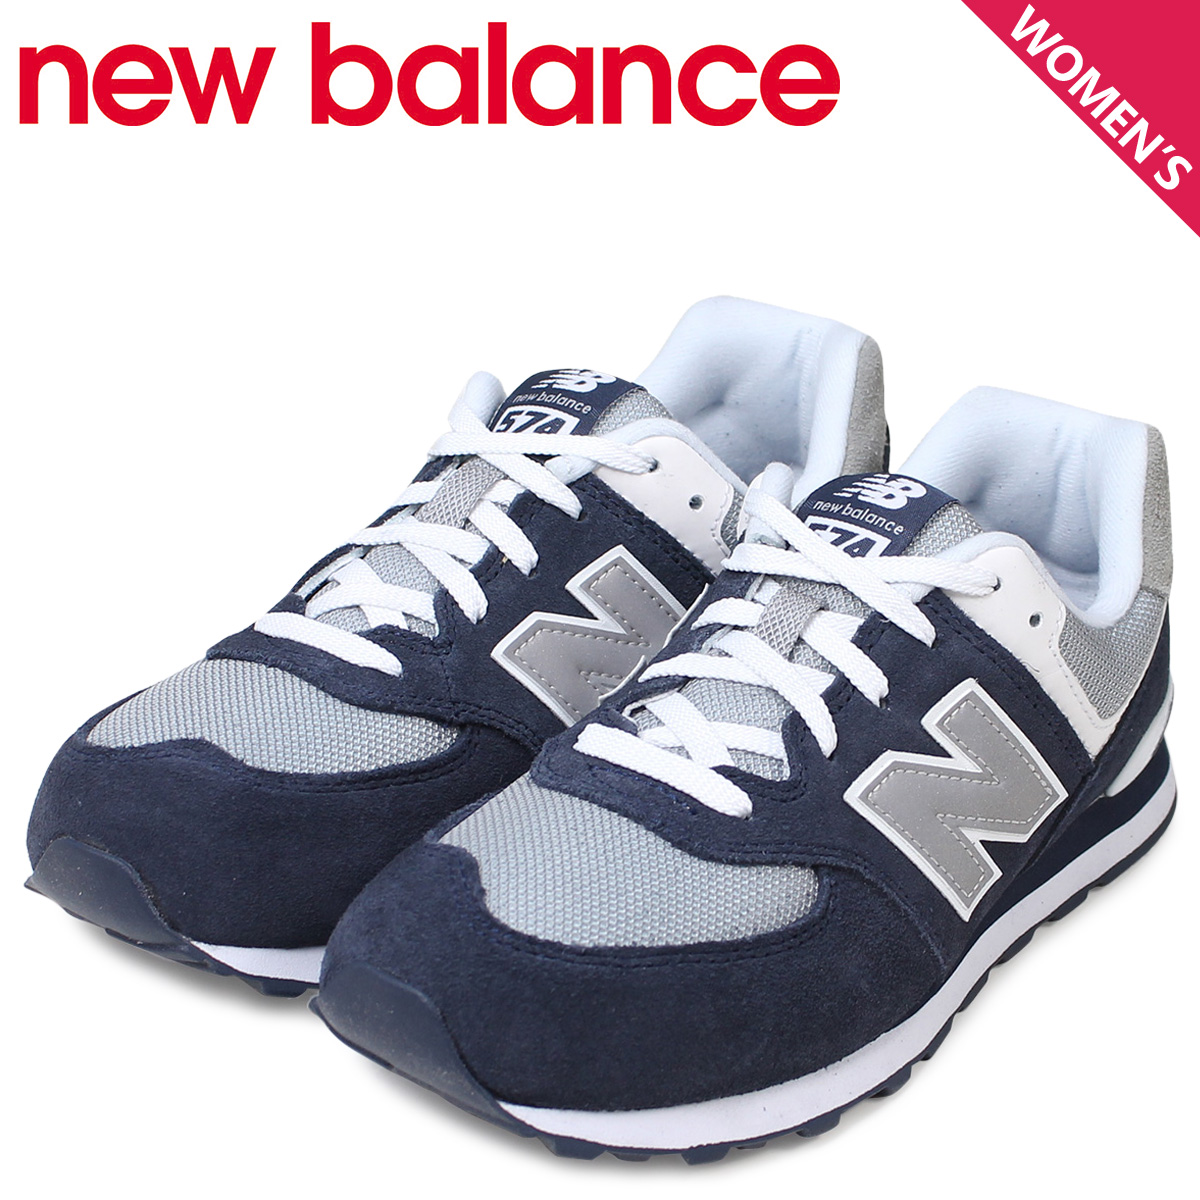 f68f5a85 New balance new balance women's KL574NWG sneaker M wise suede mesh kids '  Junior kids Navy grey white